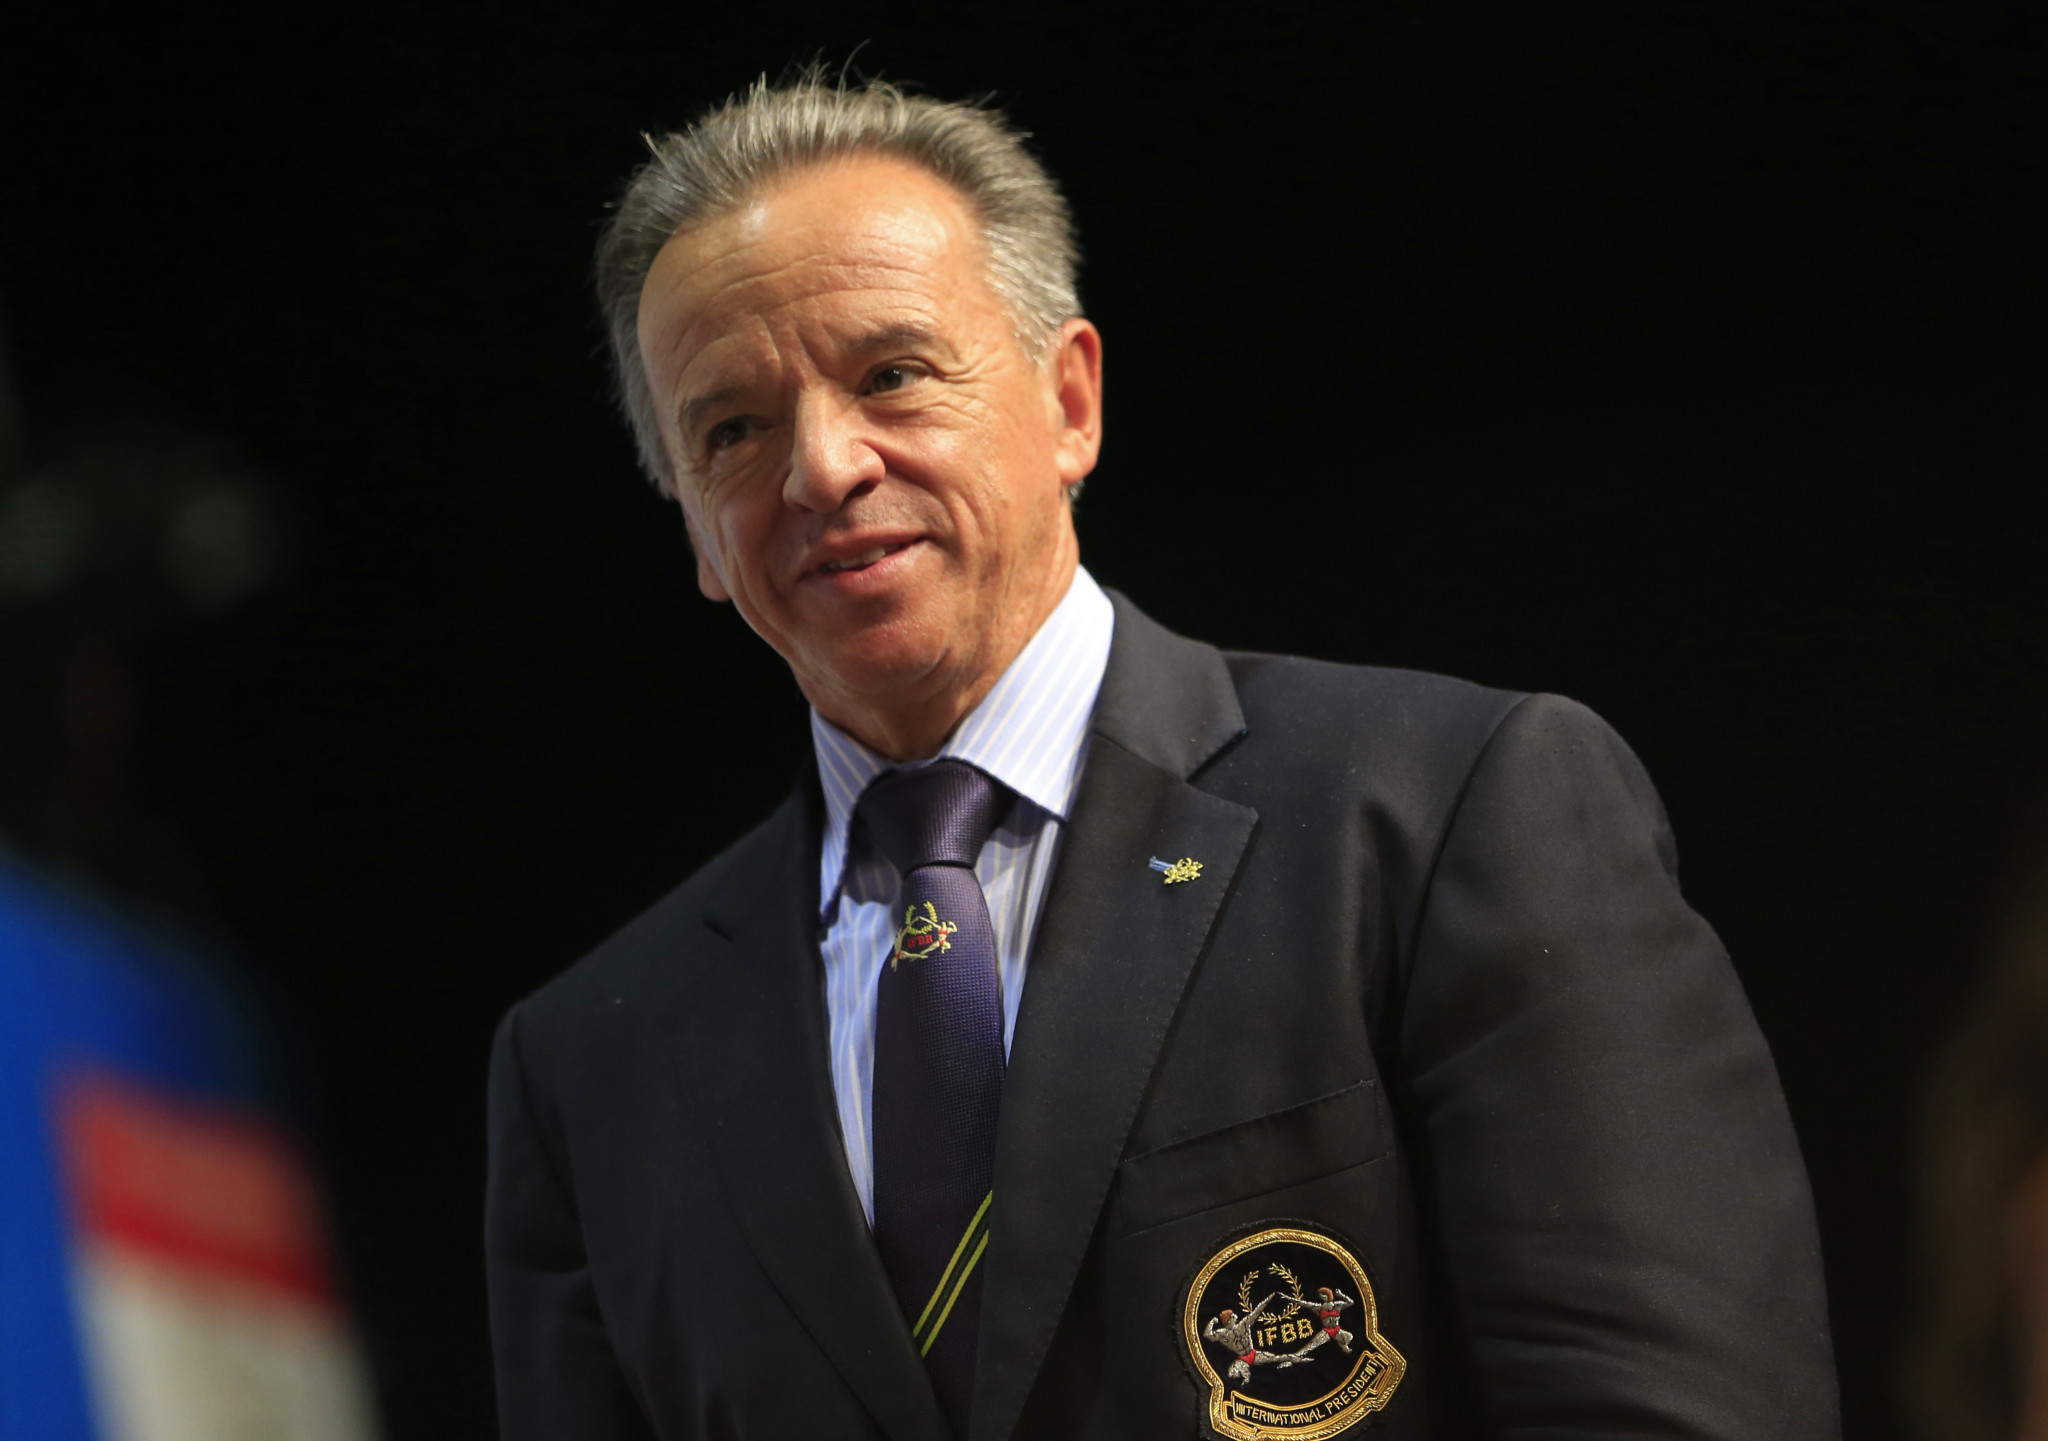 IFBB President Santonja to make case for inclusion at CAC Games